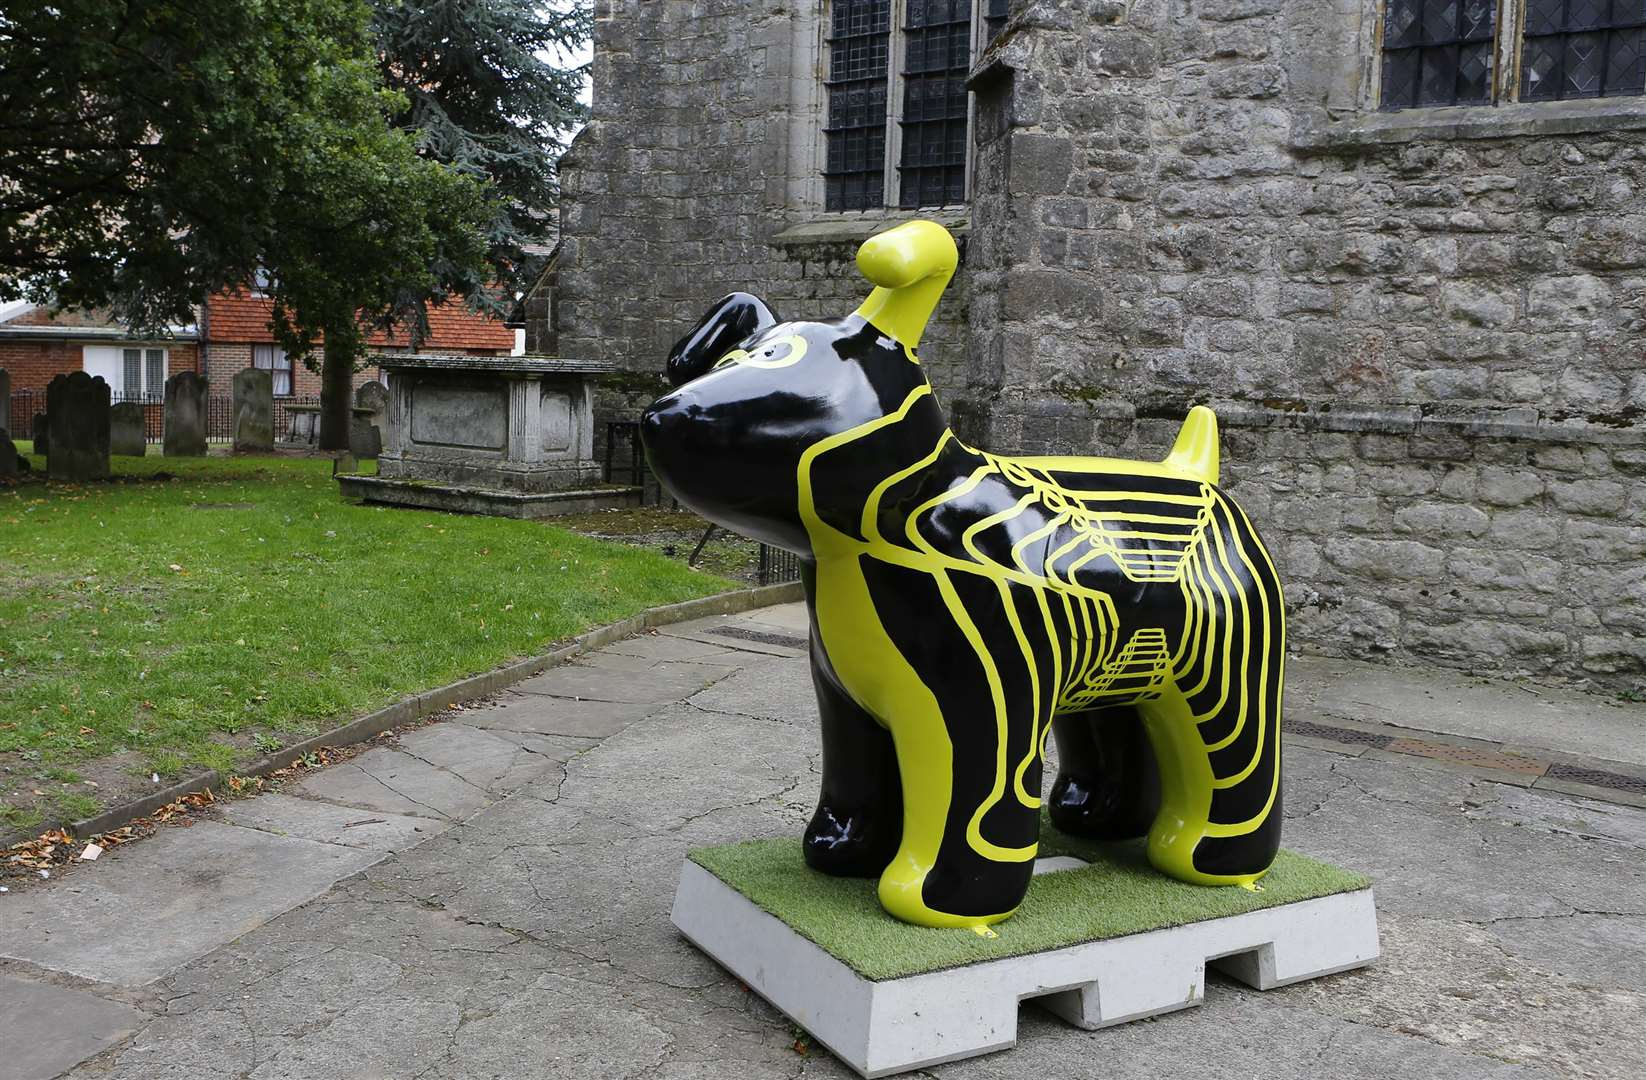 The Infinity Dog, by Jessica Holly Goddard, was removed from the church two weeks ago